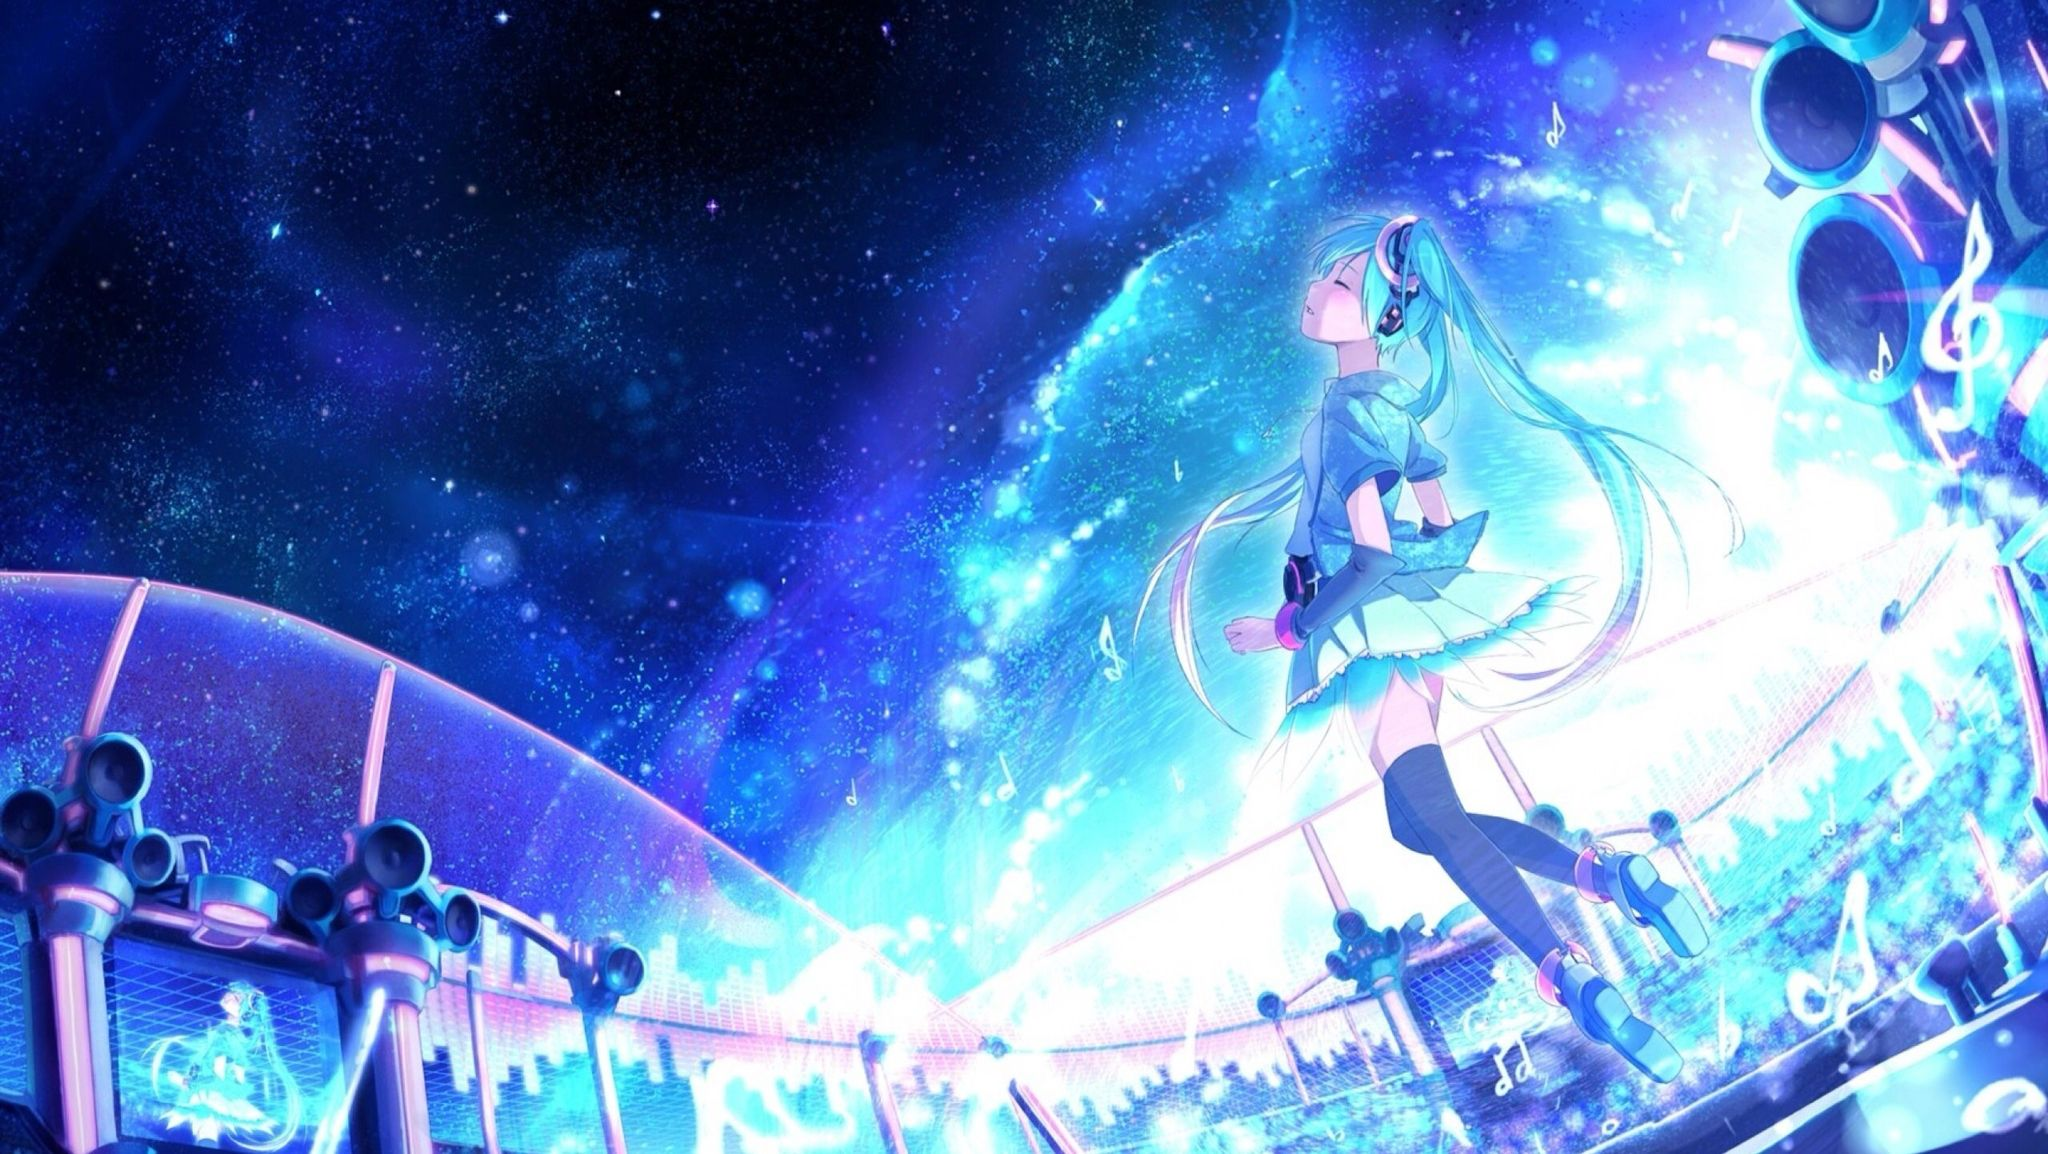 Pin by Evie Wright on A͟n͟i͟m͟e͟ Hatsune miku, Japanese